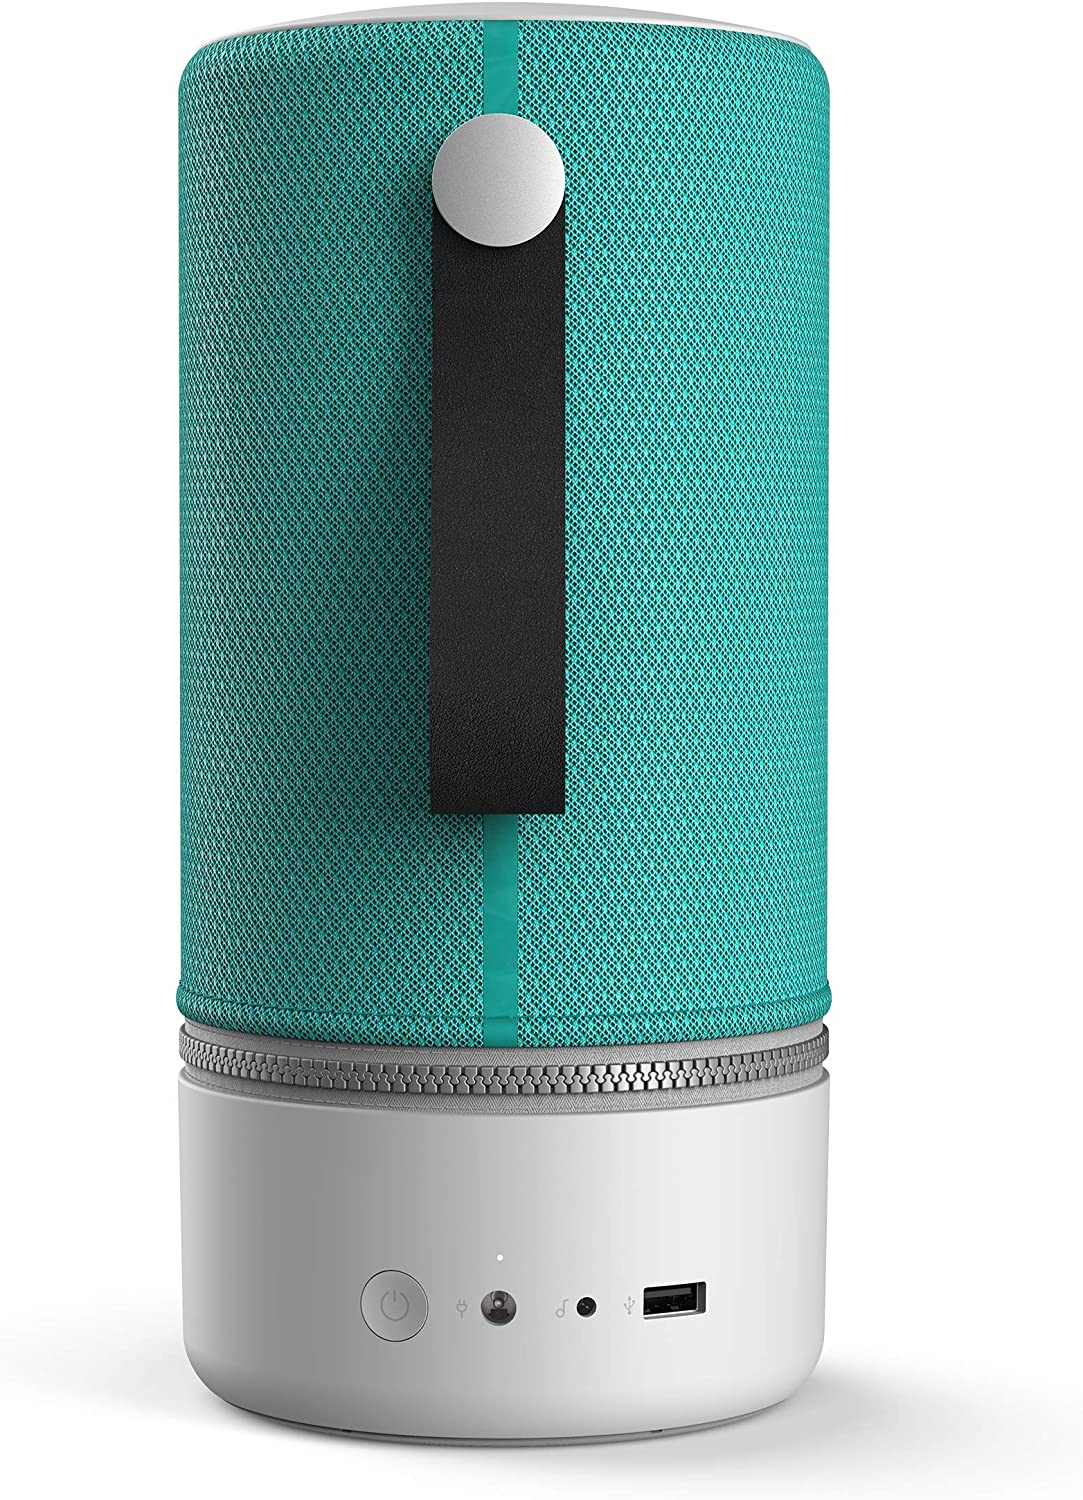 Libratone Zipp 2 - Altavoz inteligente con Alexa integrada multiroom, color verde (Pine Green): Amazon.es: Electrónica